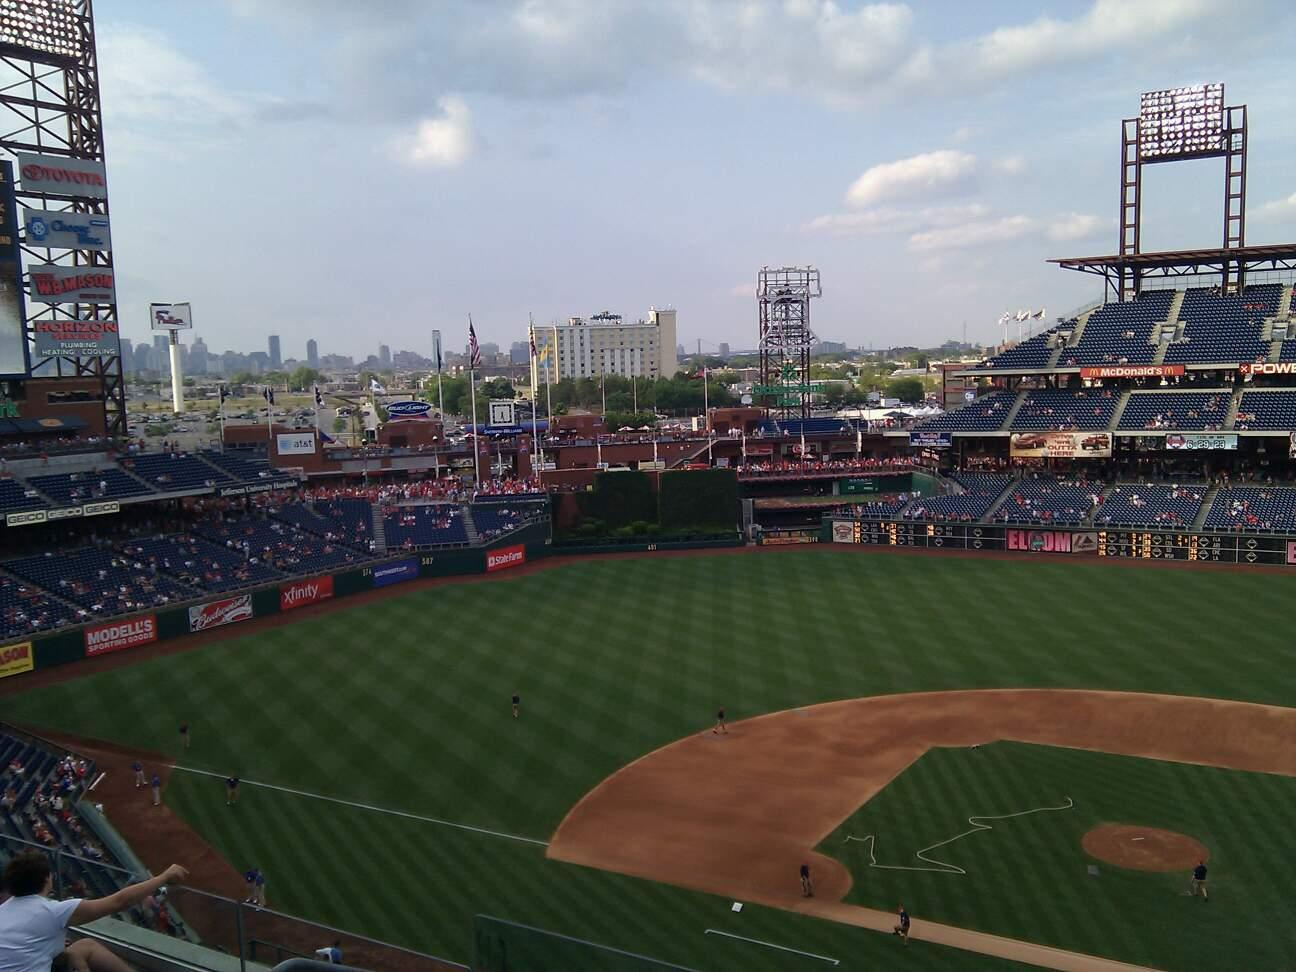 Citizens Bank Park Section 324 Row 5 Seat 19